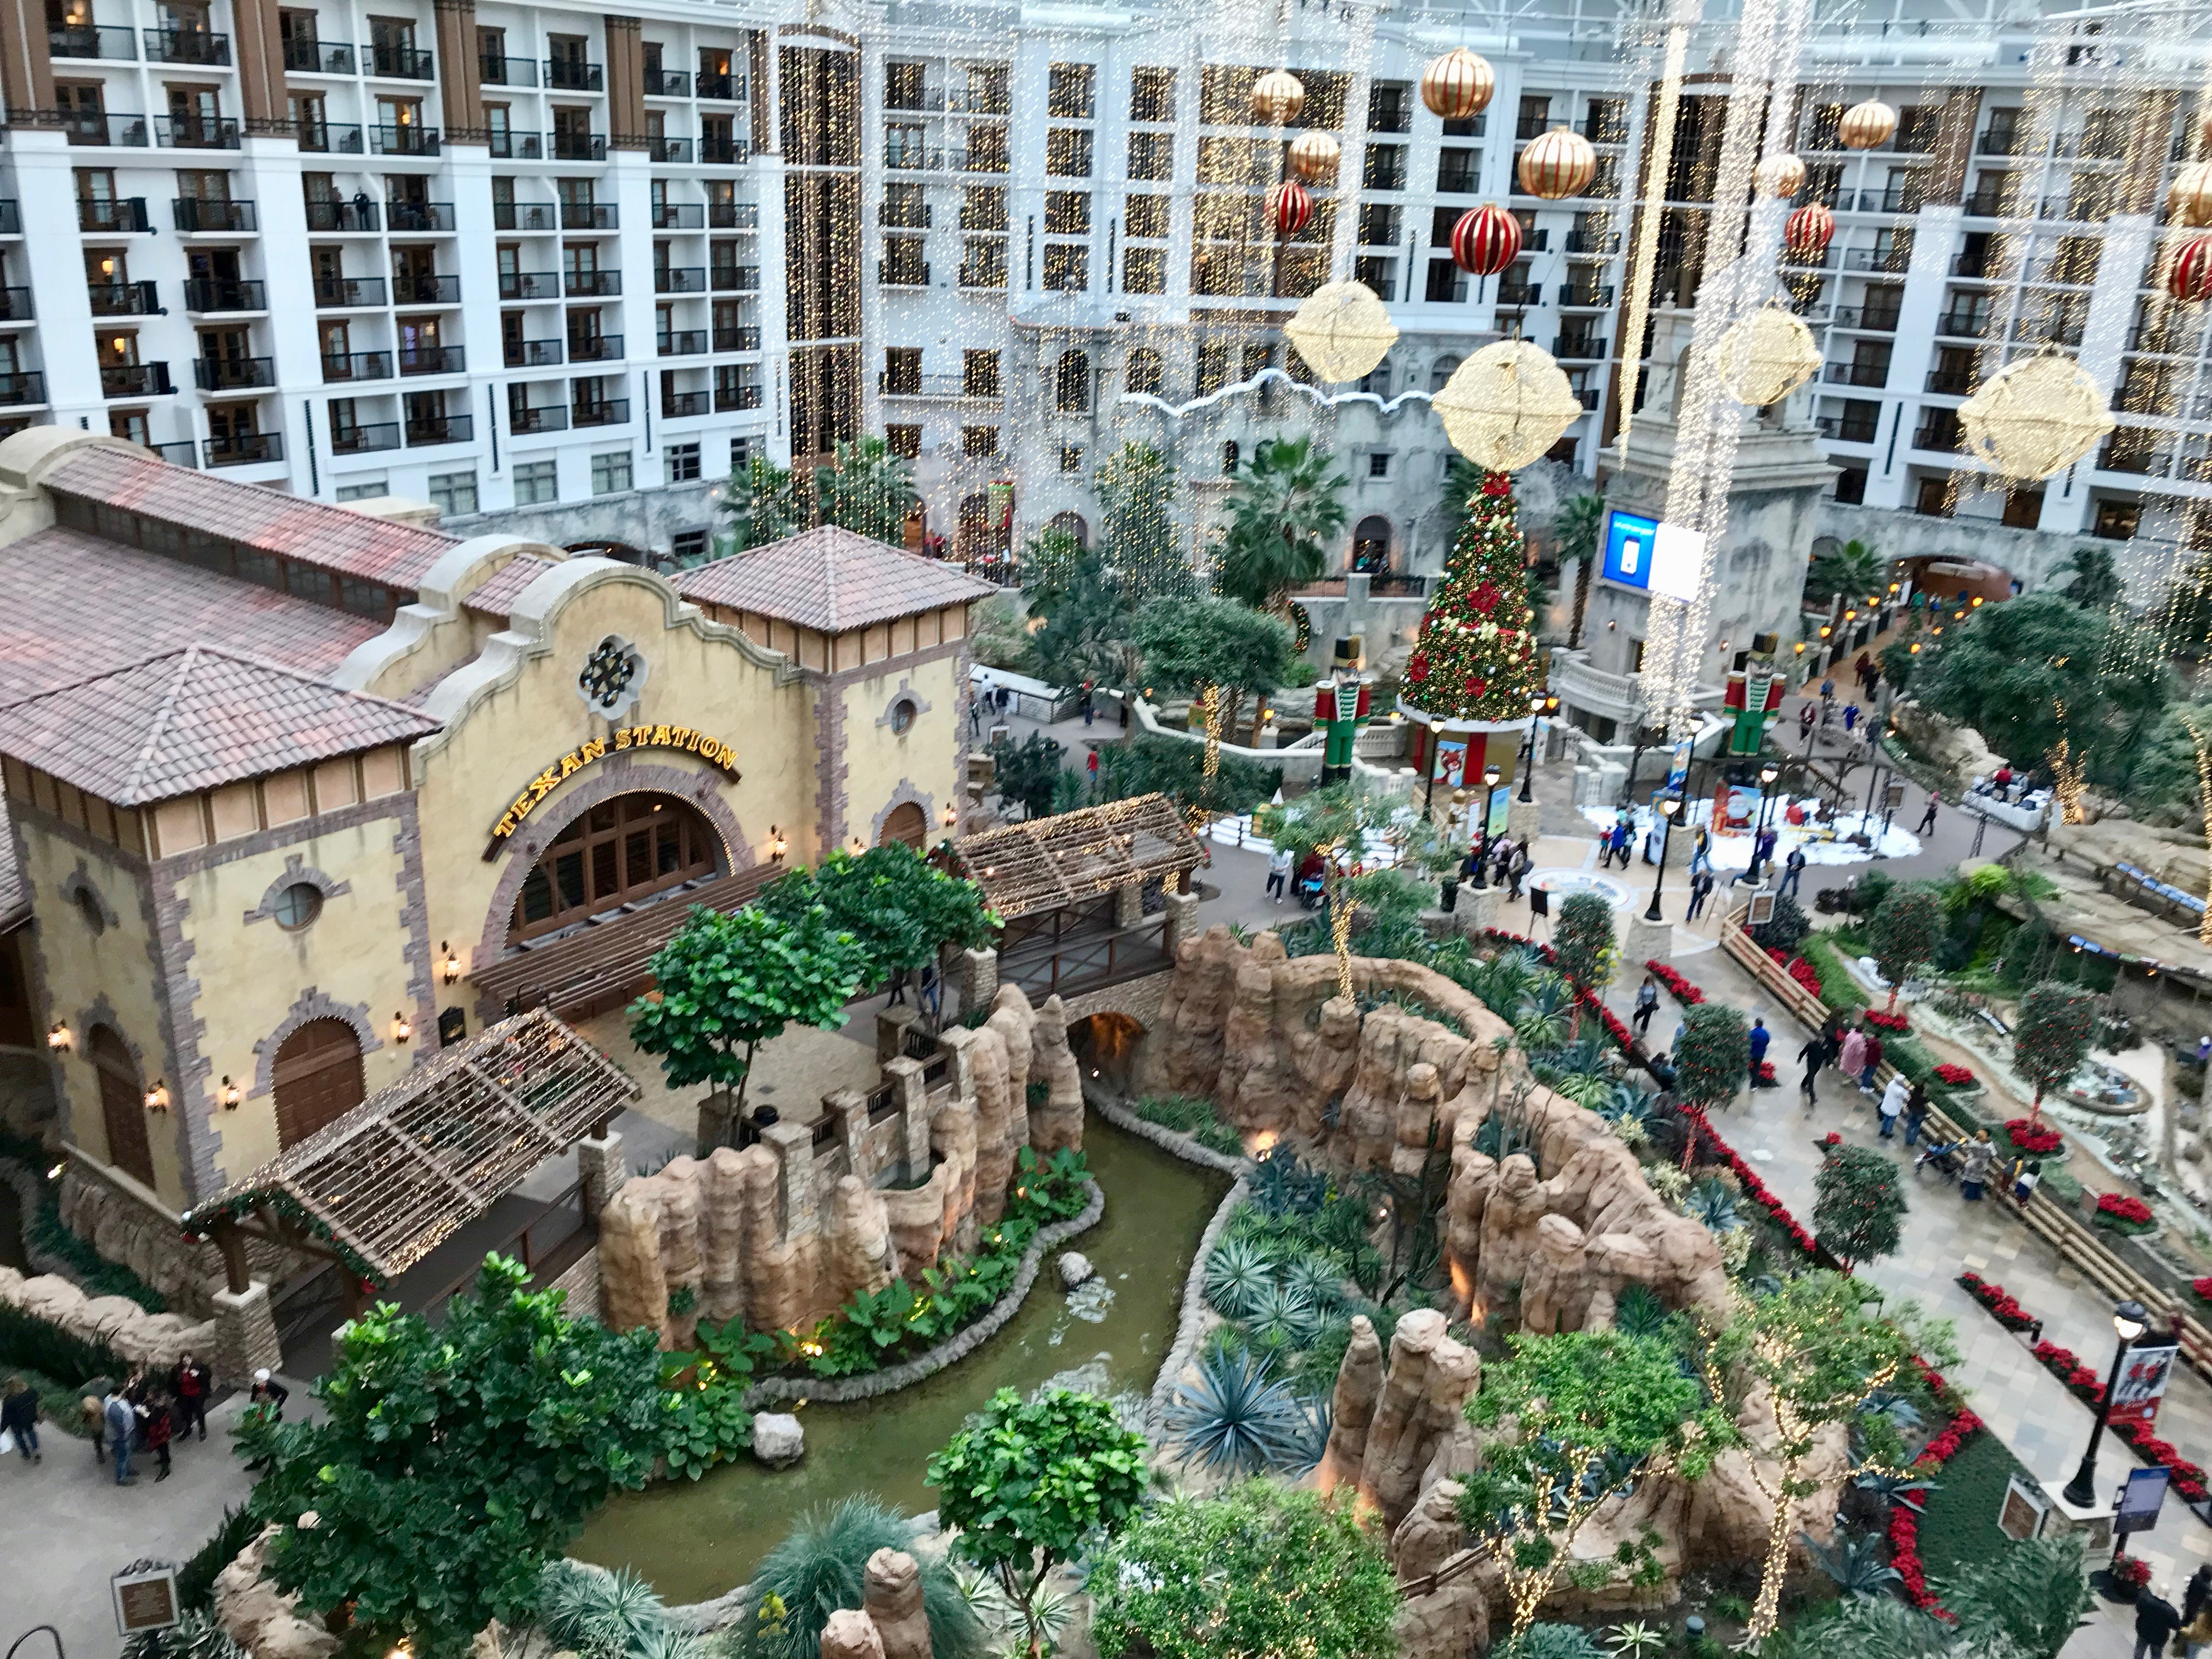 Gaylord Texan is a Texas resort with a huge, indoor atrium